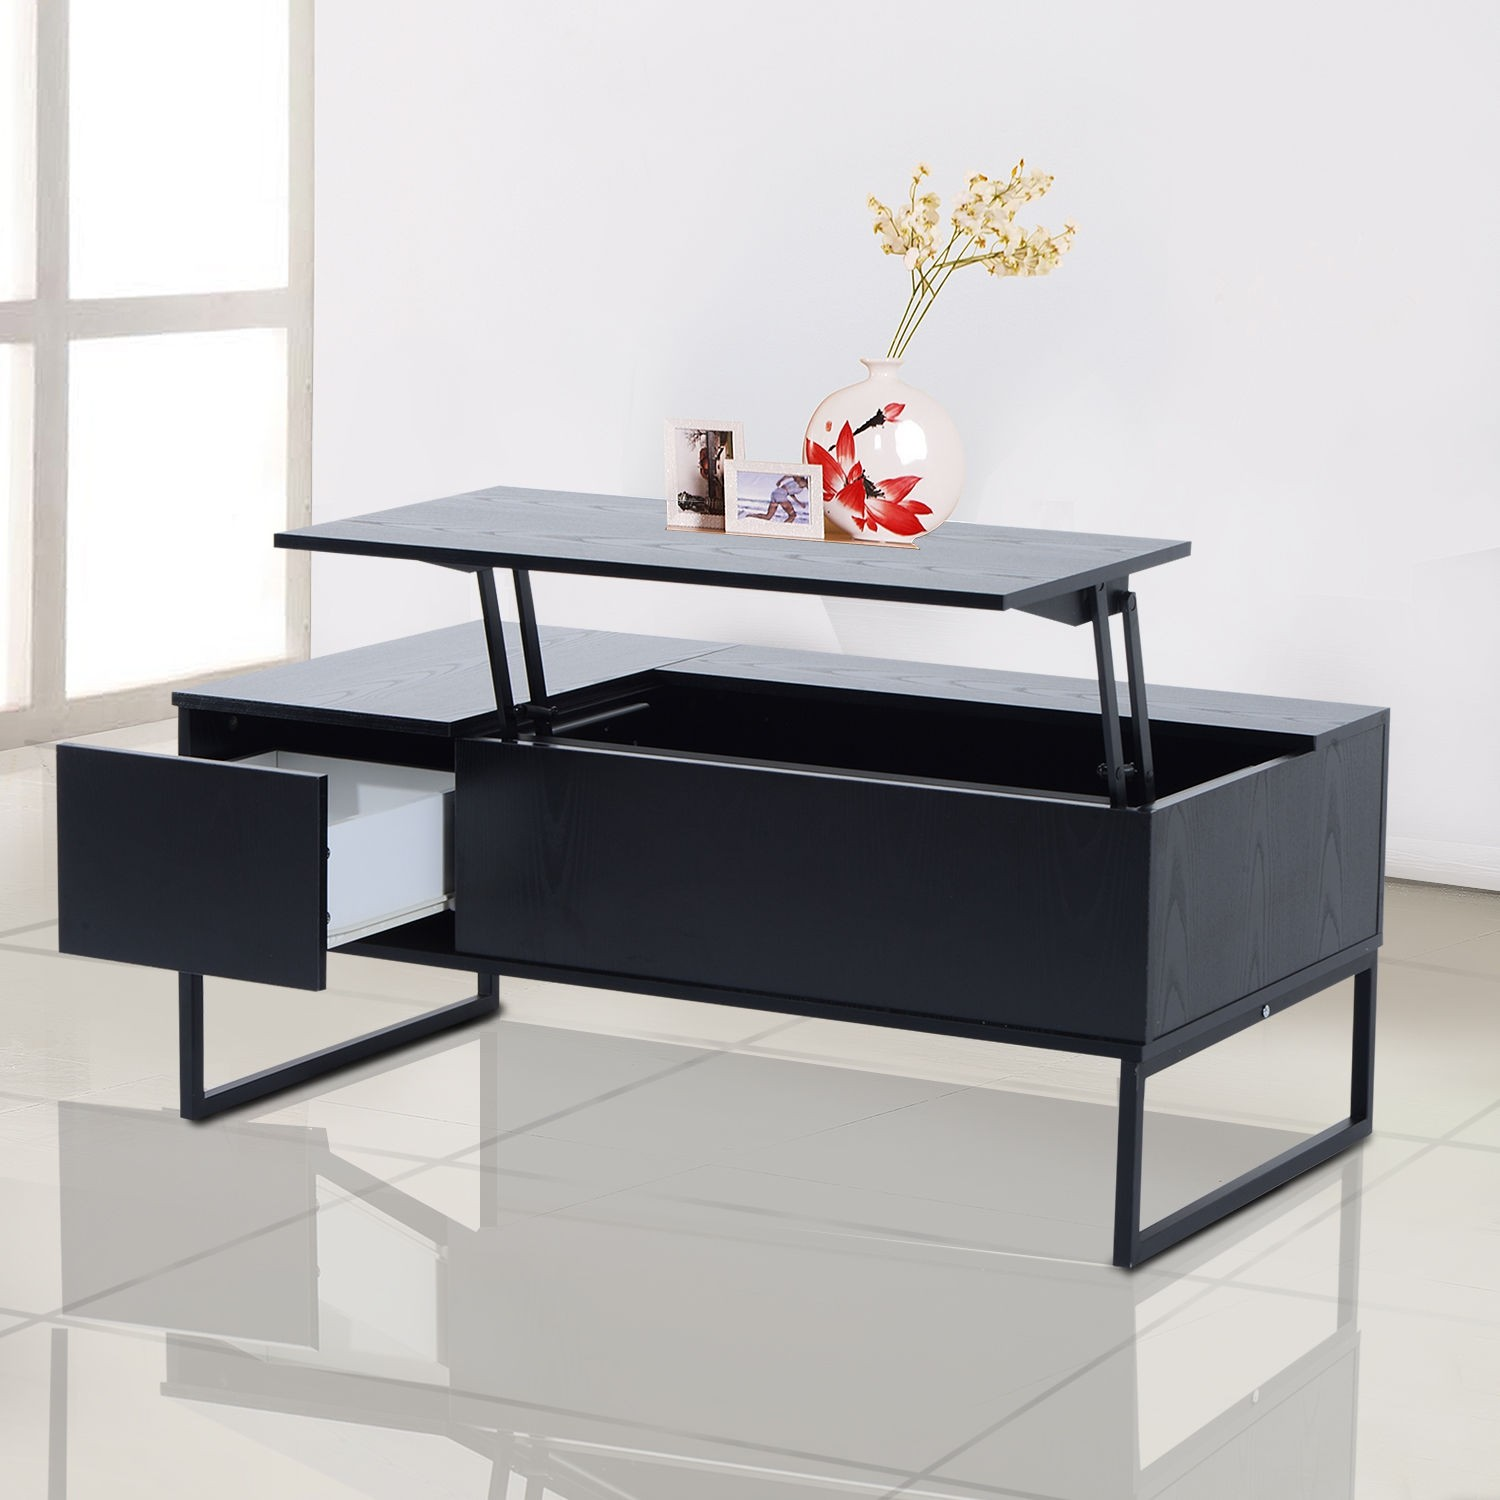 desk coffee table height convertible adjustable dining designs taffette ideas